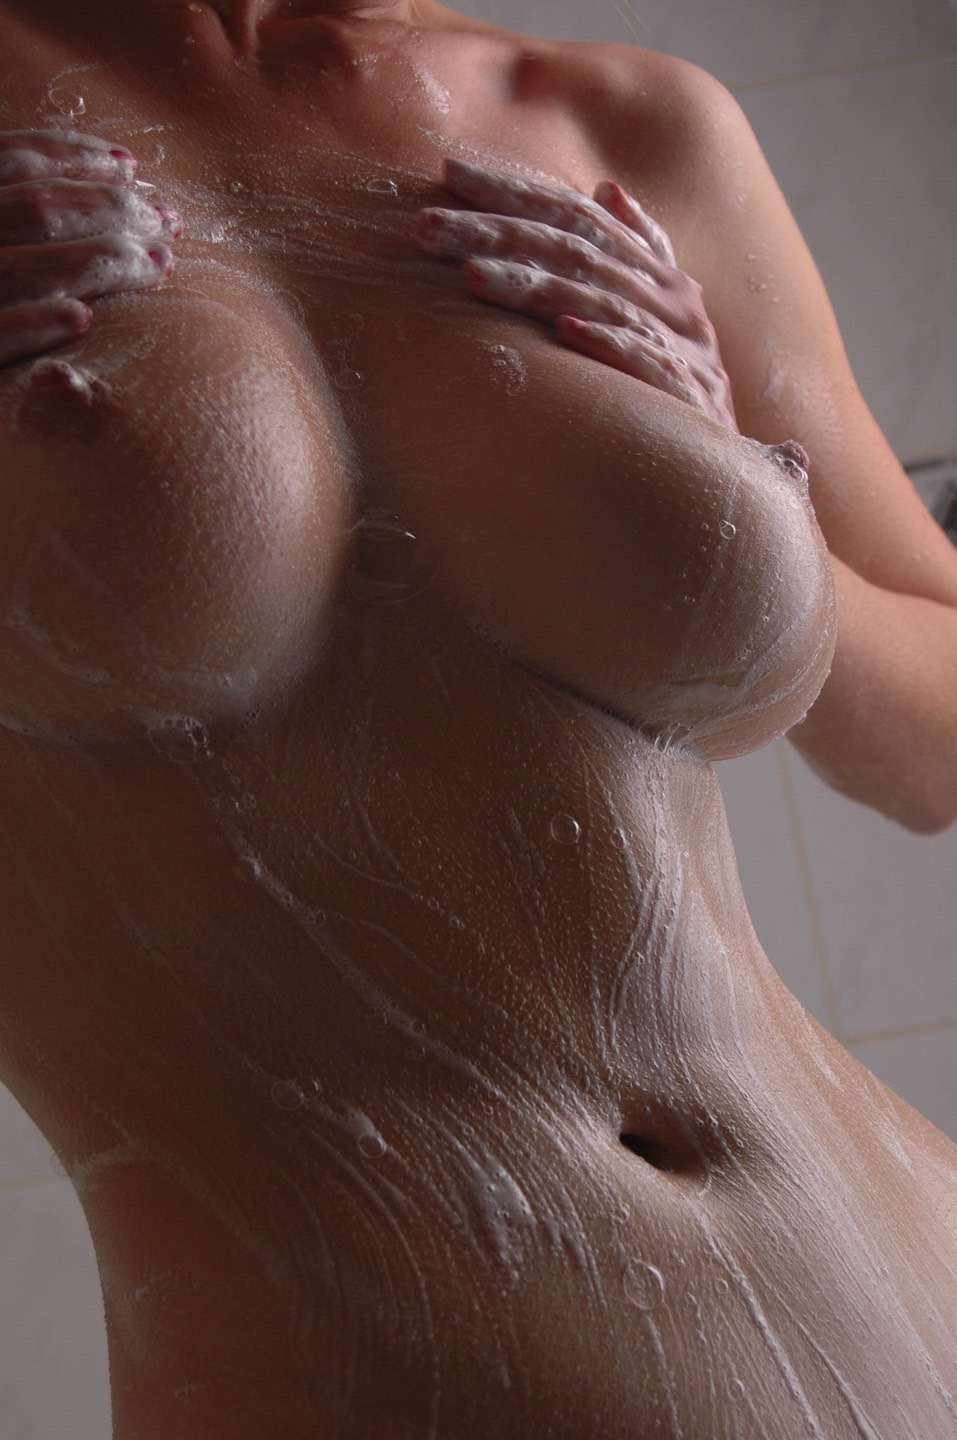 big tits and ass pov naked girls